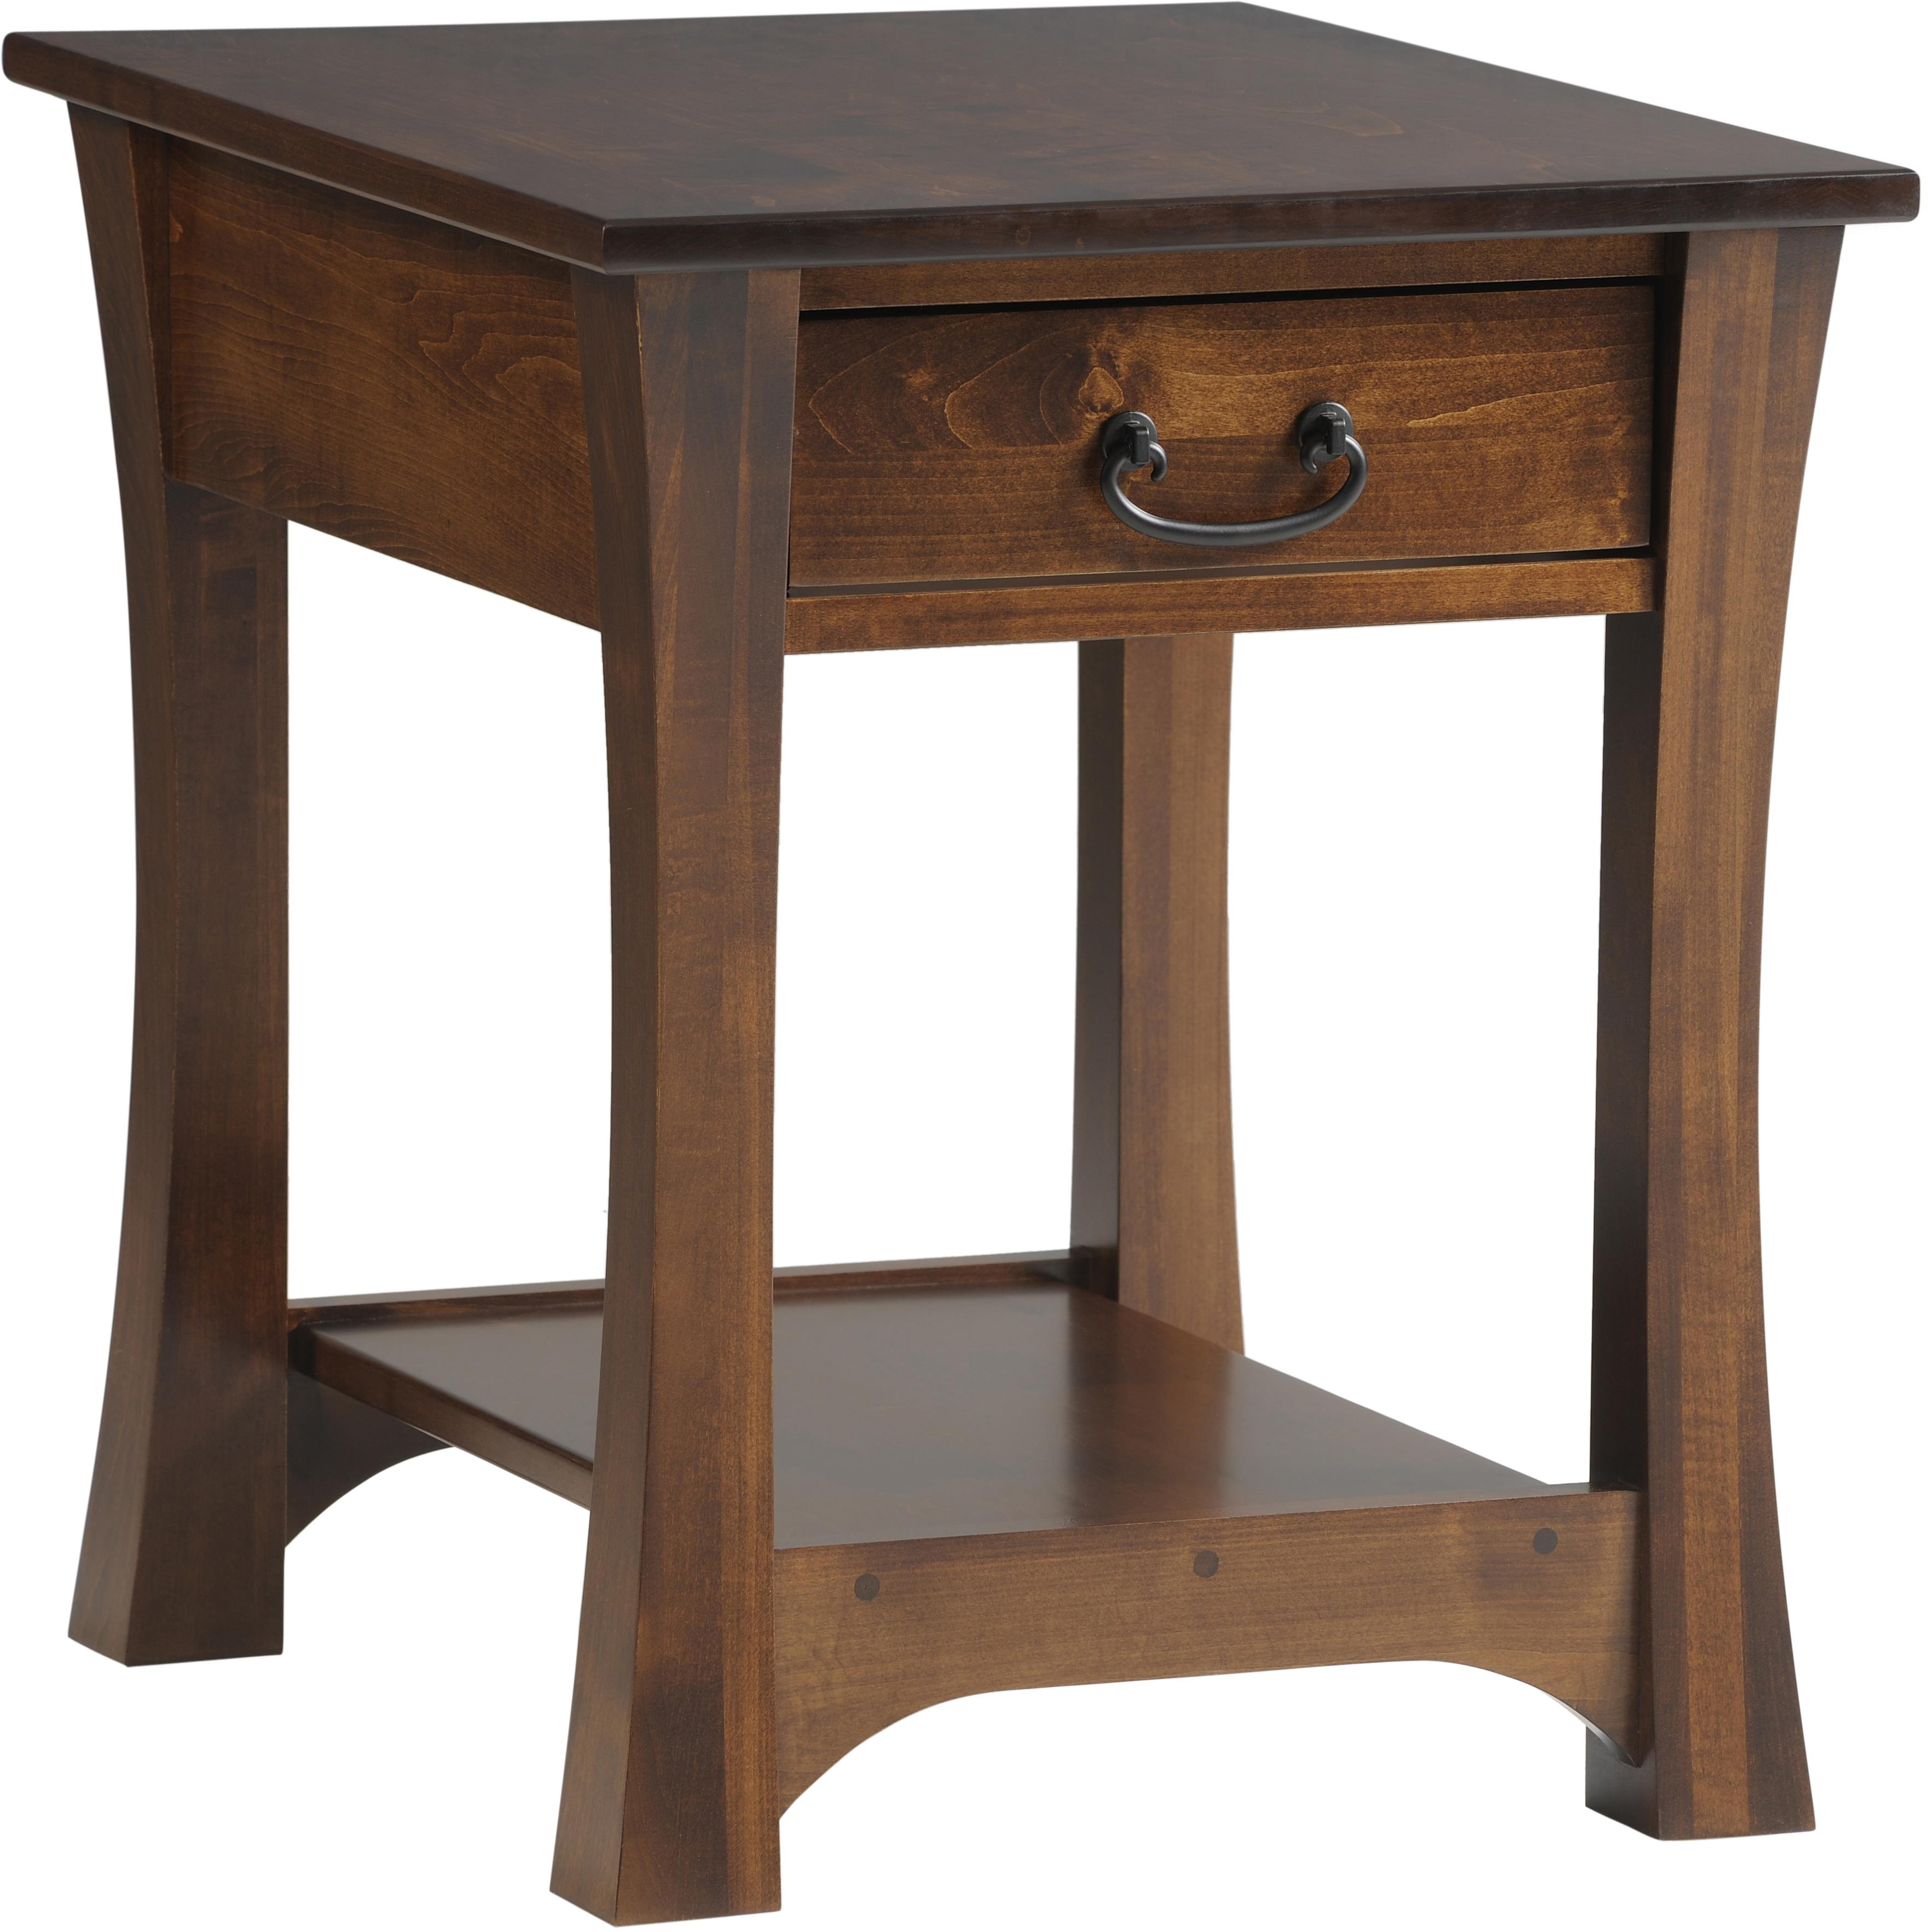 Woodbury End Table by Y & T Woodcraft at Saugerties Furniture Mart